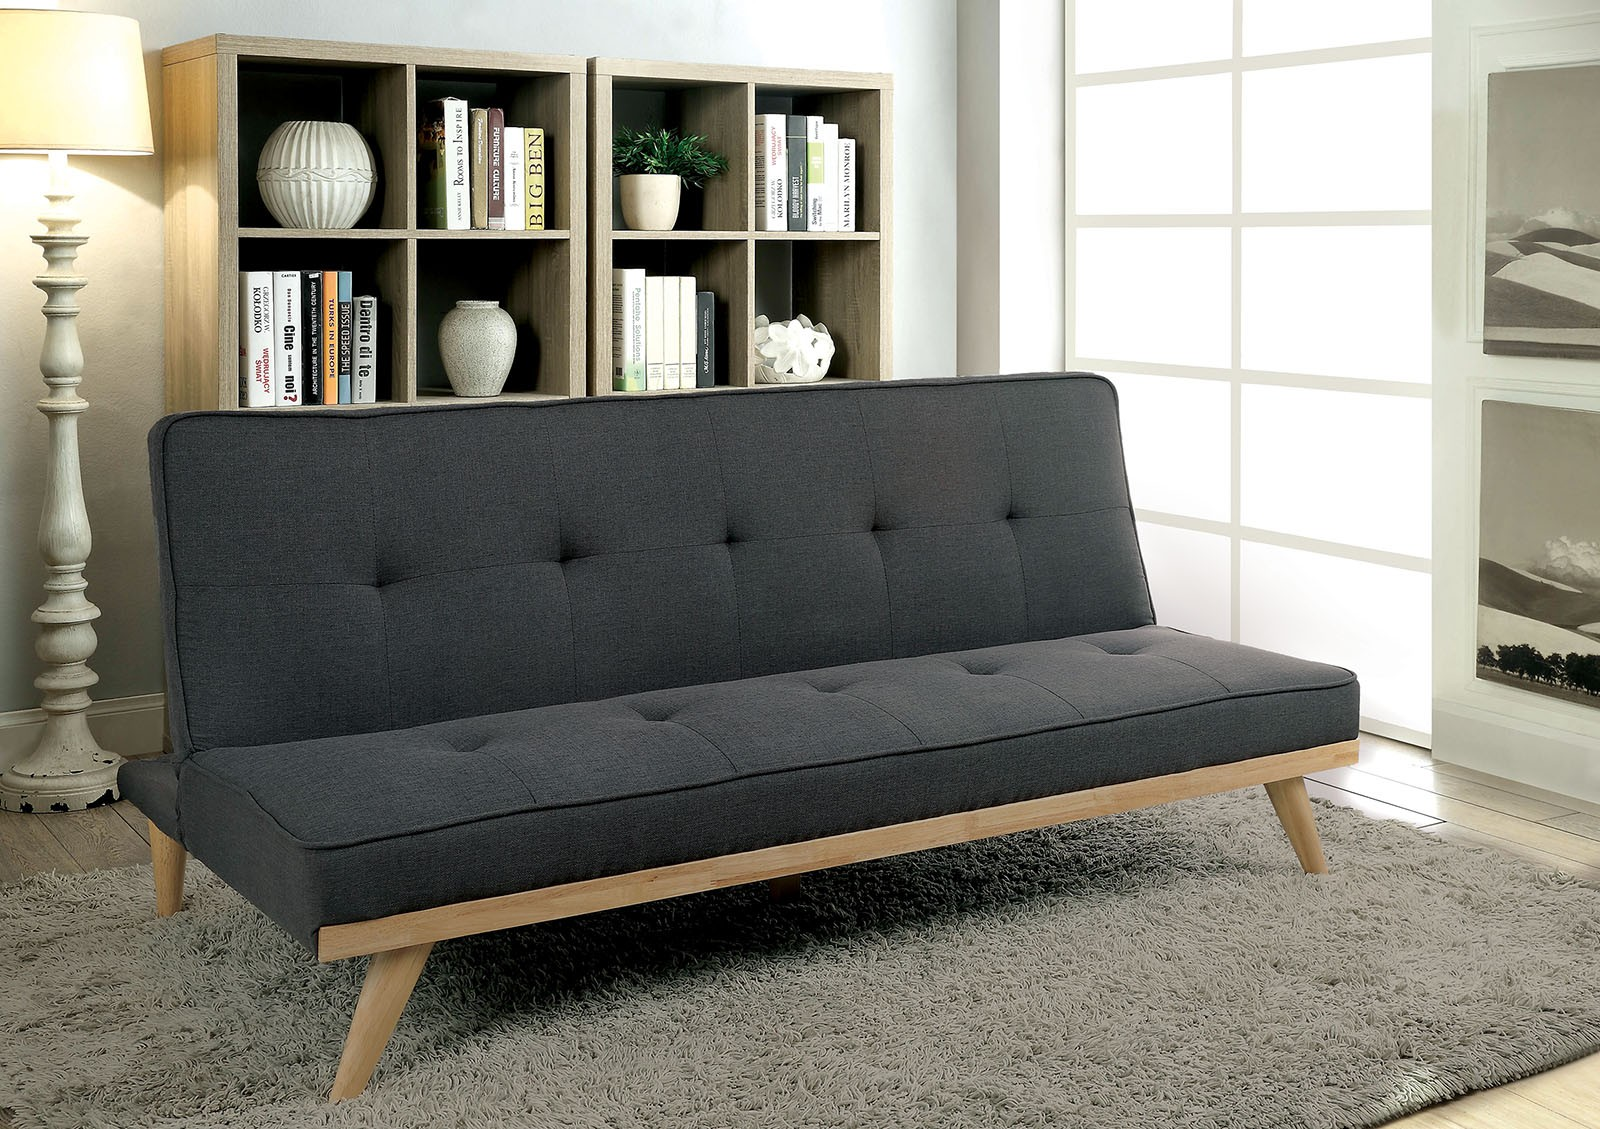 SALE! Wayfair Mid Century Sofa Bed